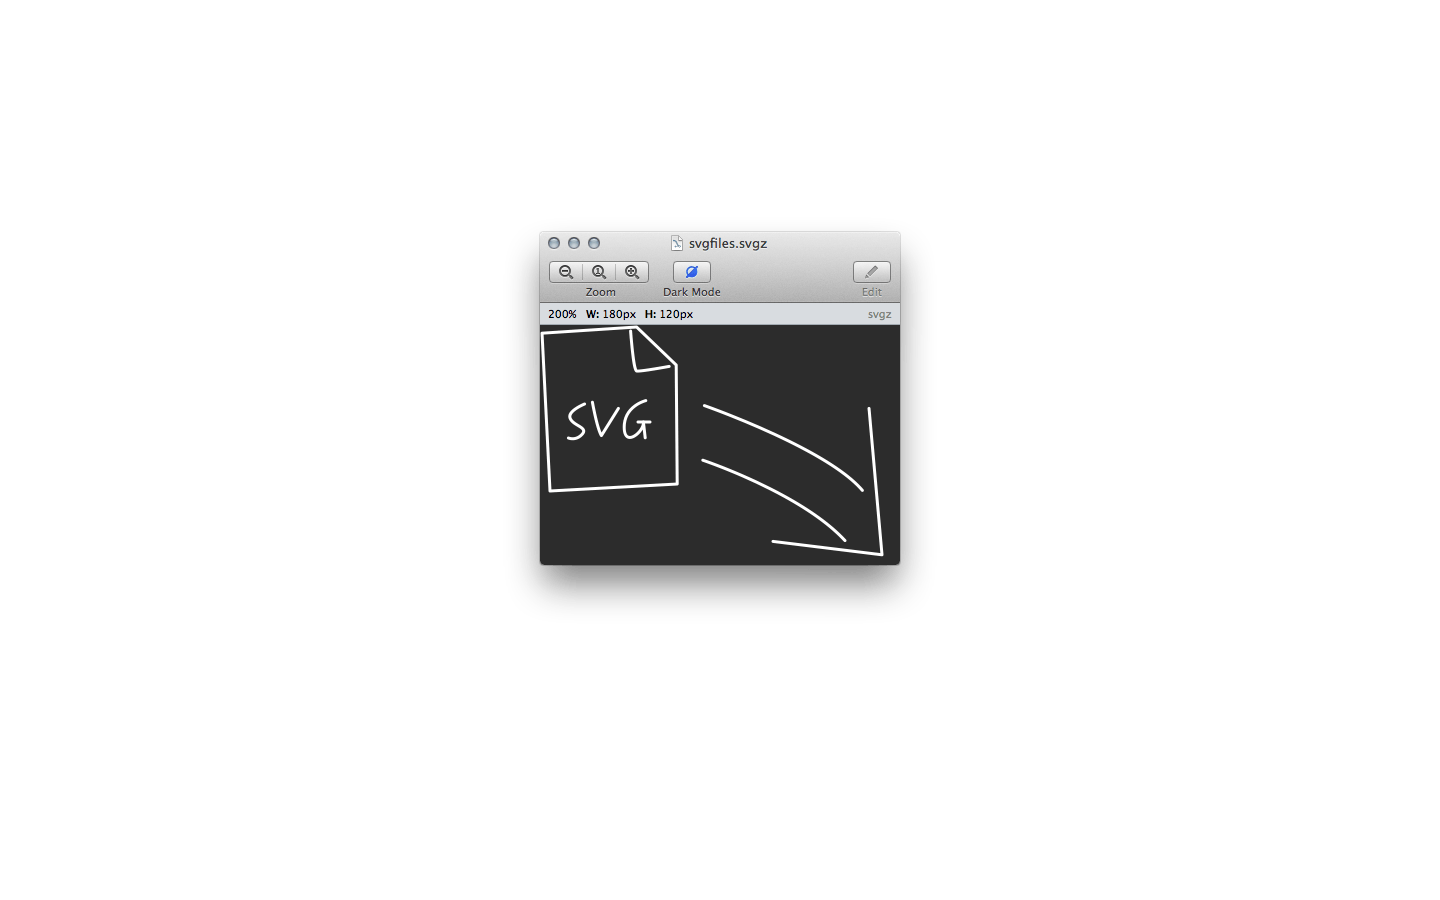 Svg mac finder. Gapplin viewer for macos